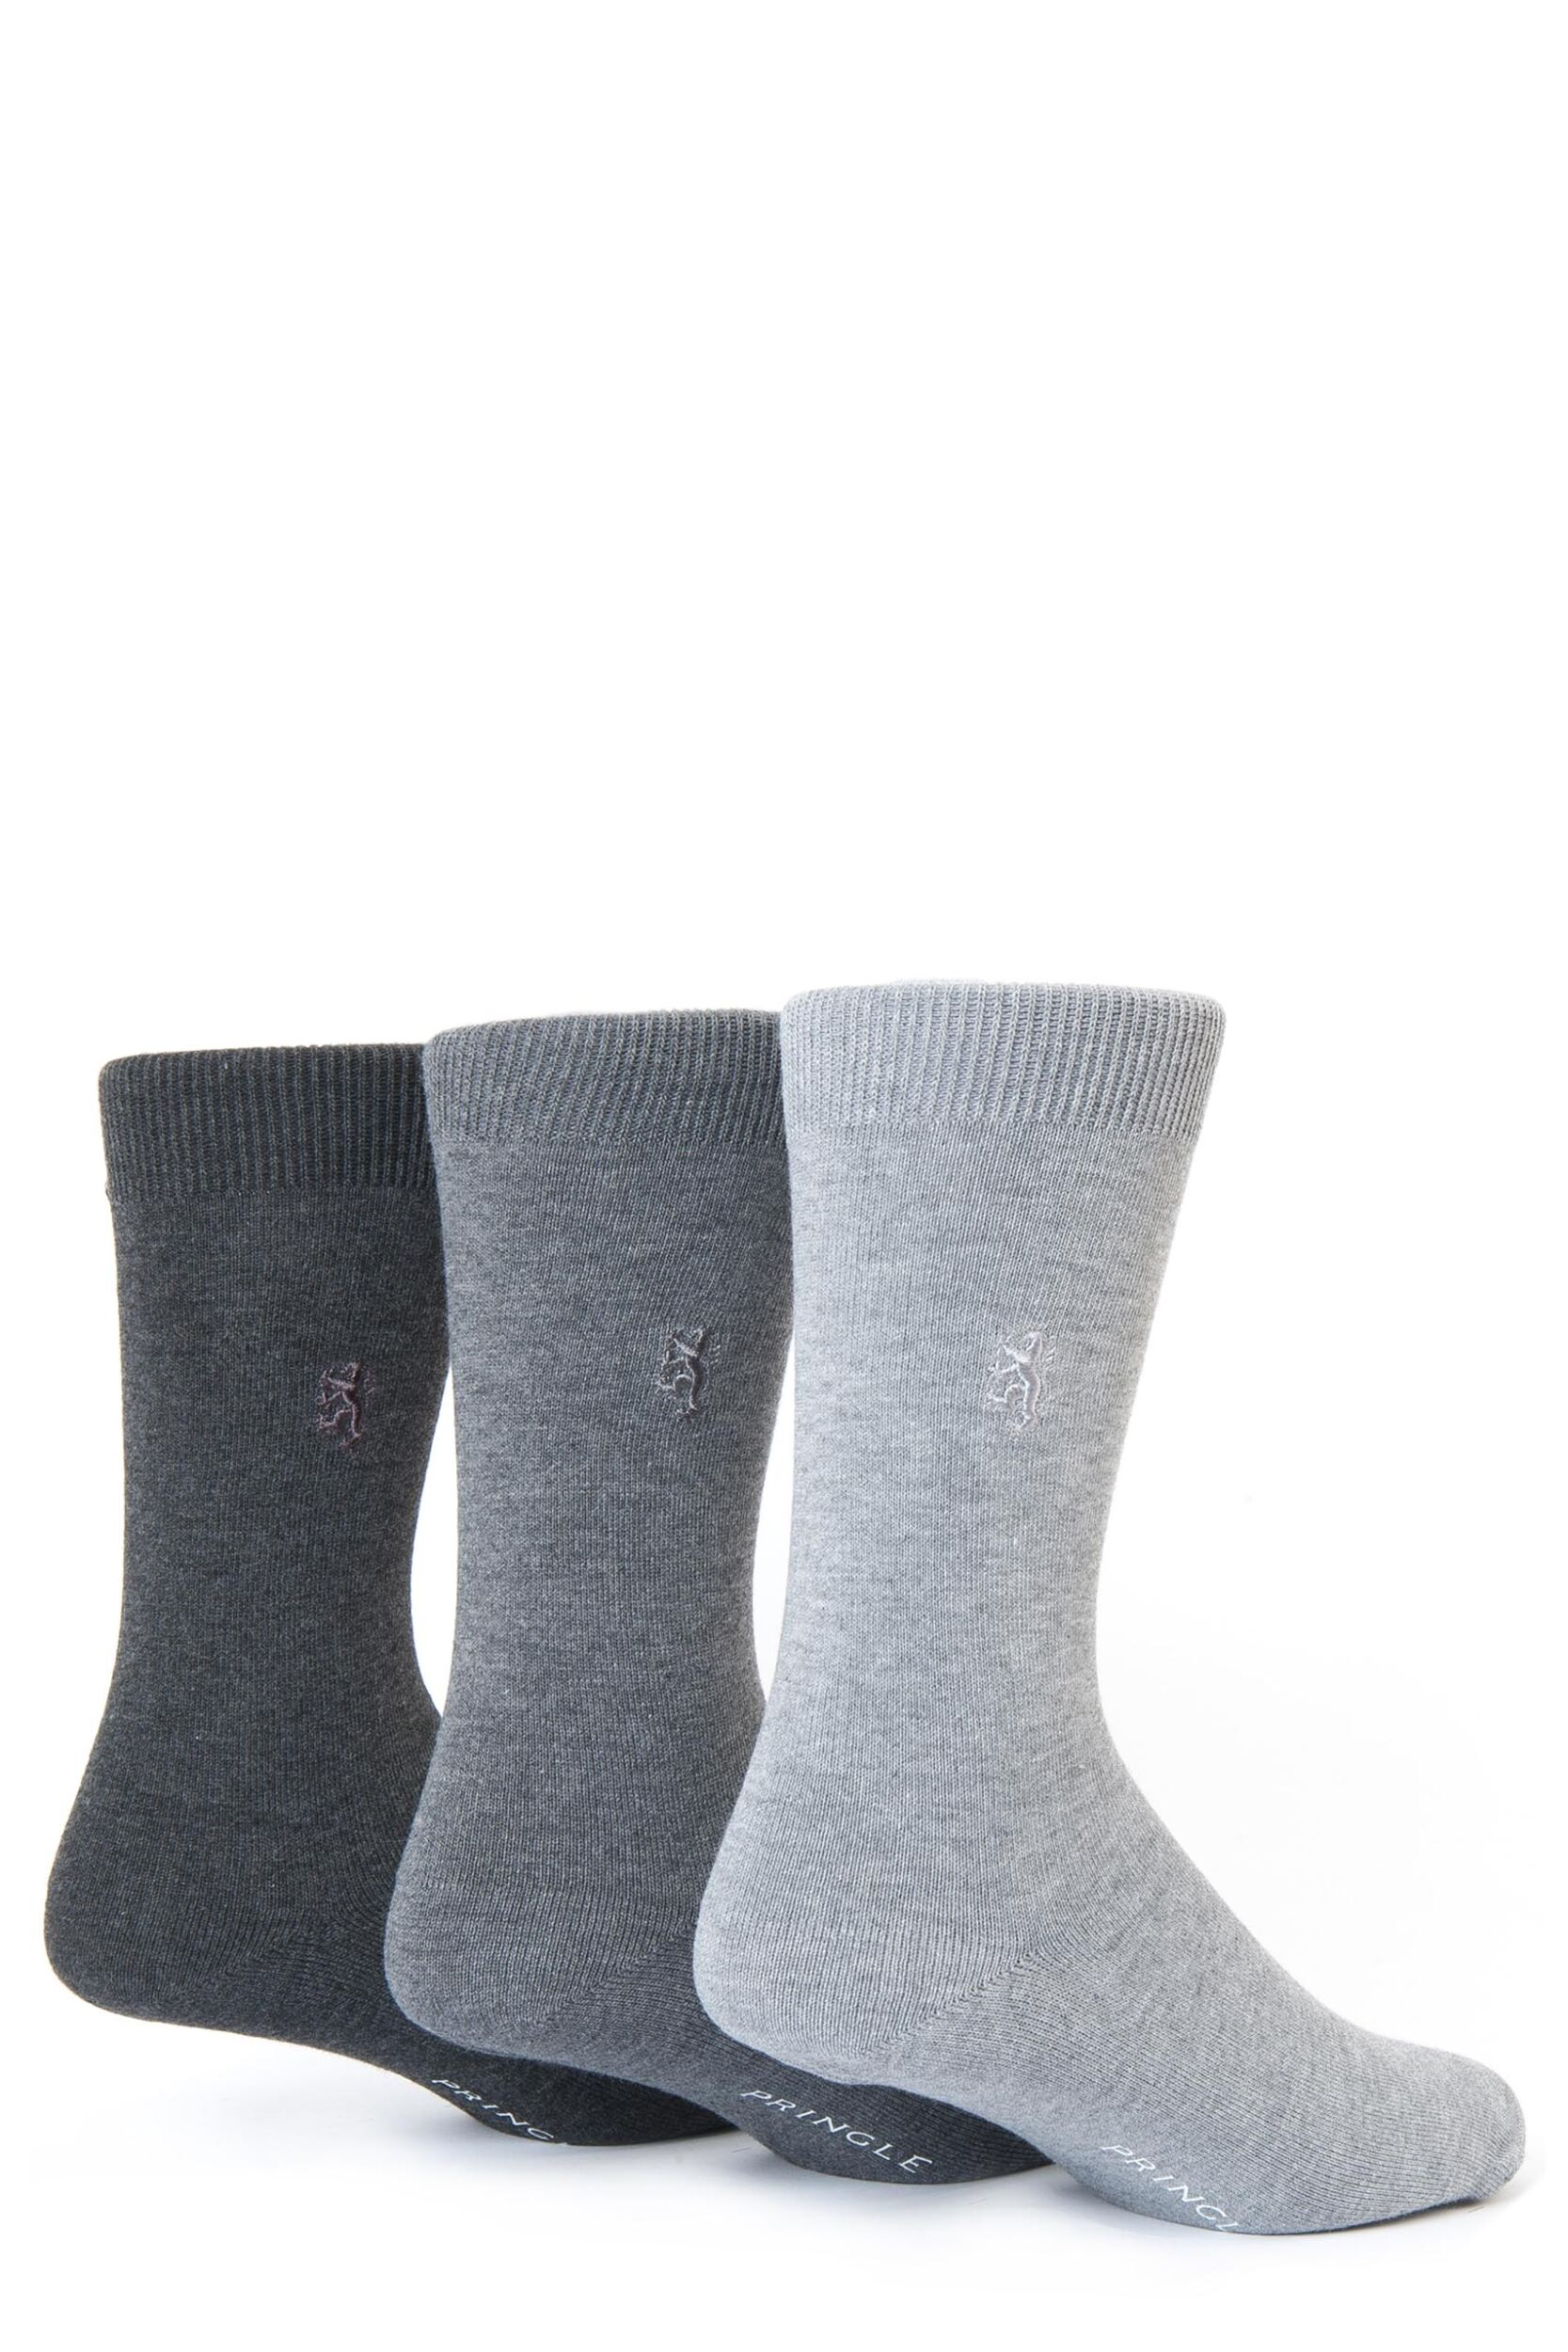 Mens-3-Pair-Pringle-of-Scotland-Classic-Bamboo-Plain-Socks